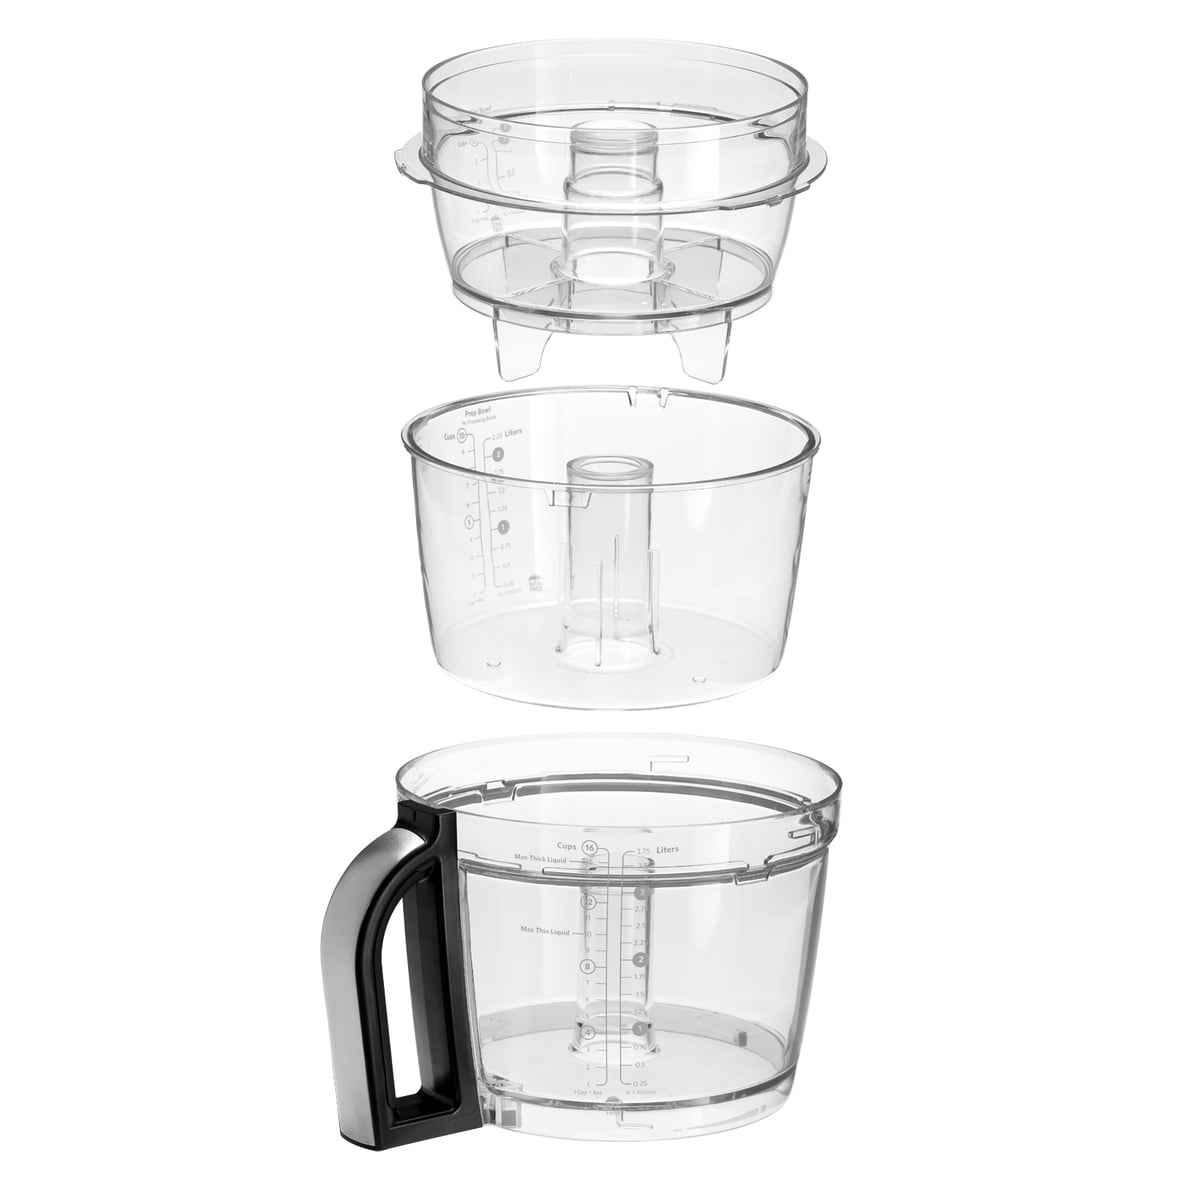 Kitchenaid Artisan Food Processor 4 0 L Bowls